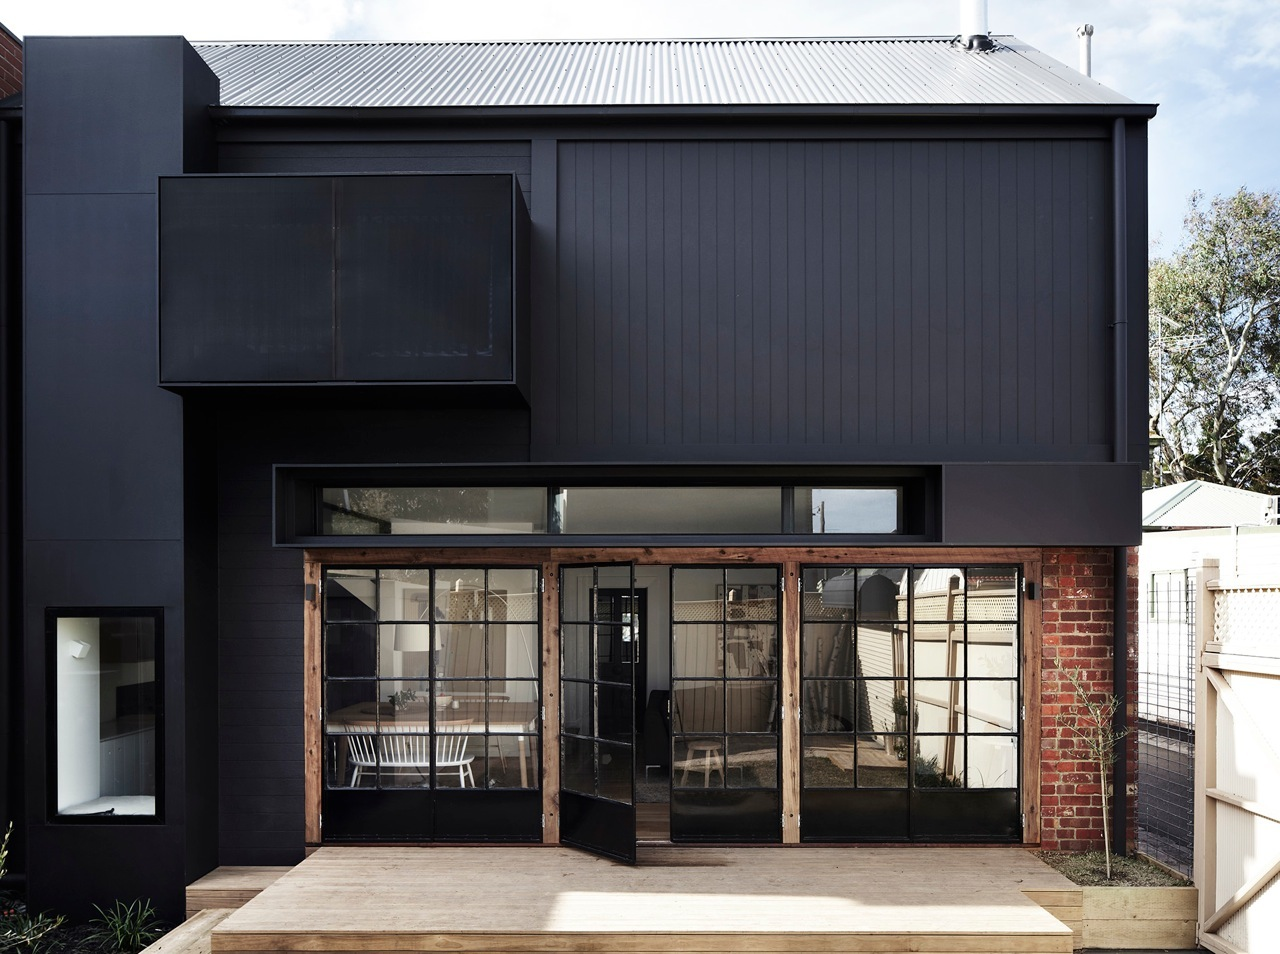 Exterior Entrance - Kerferd- Whiting Architects - Melbourne, VIC, Australia - The Local Project